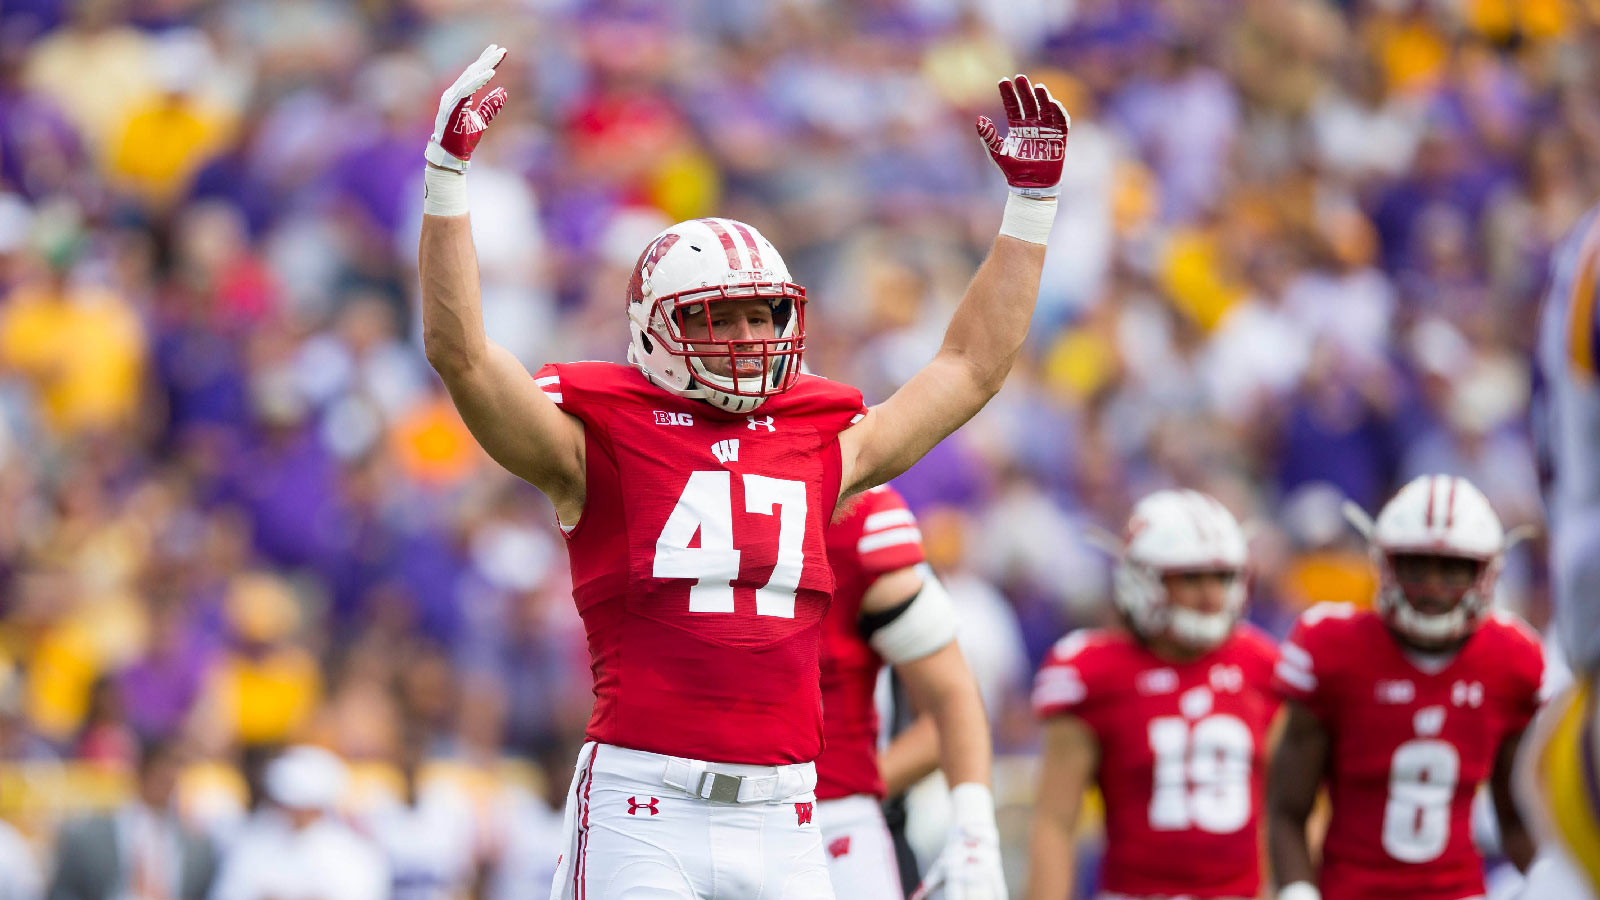 Badgers dominating defensively through two games